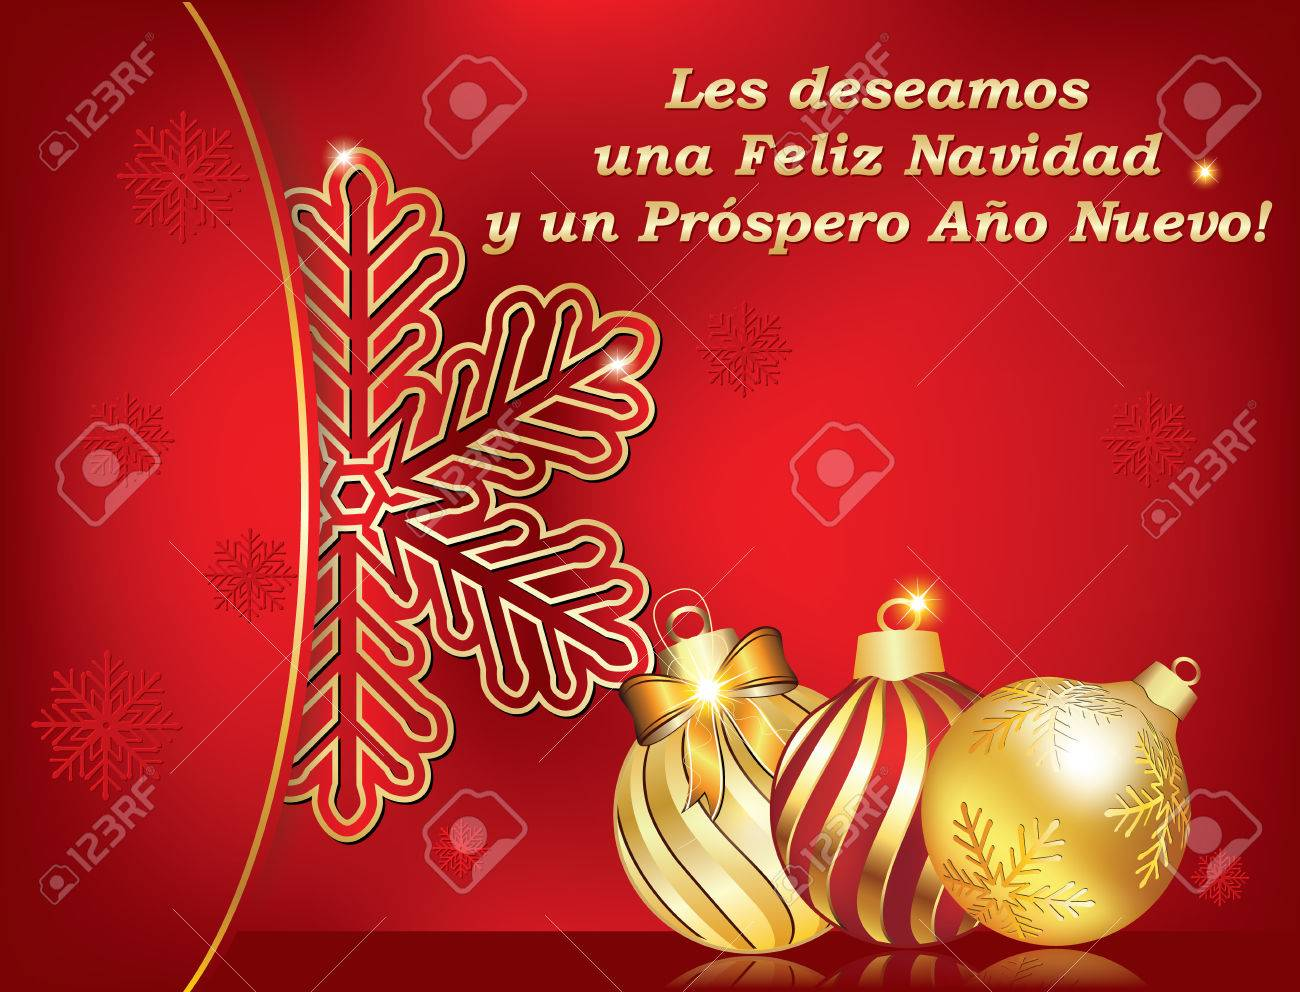 spanish seasons greetings christmas new year card les deseamos feliz navidad y feliz